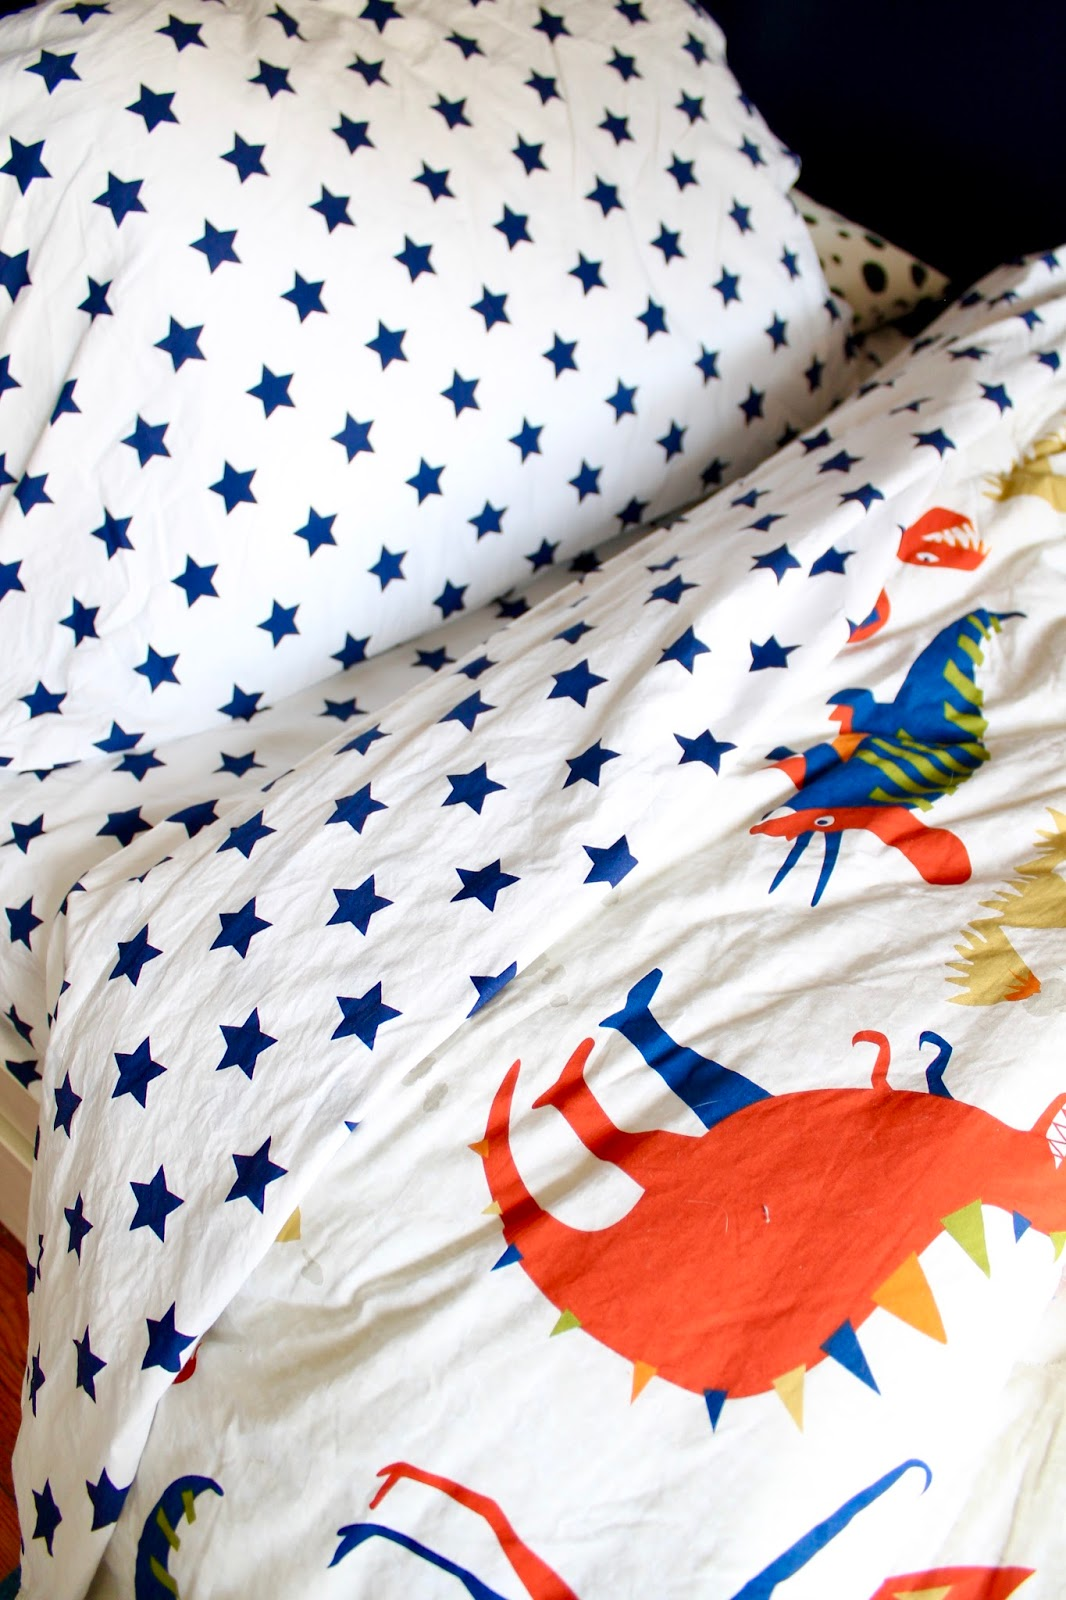 Simple  out their kid us bedding options they ure so good Thankfully they both agreed on the Dino Land Kids Comforter I loved mixing it with the star sheets